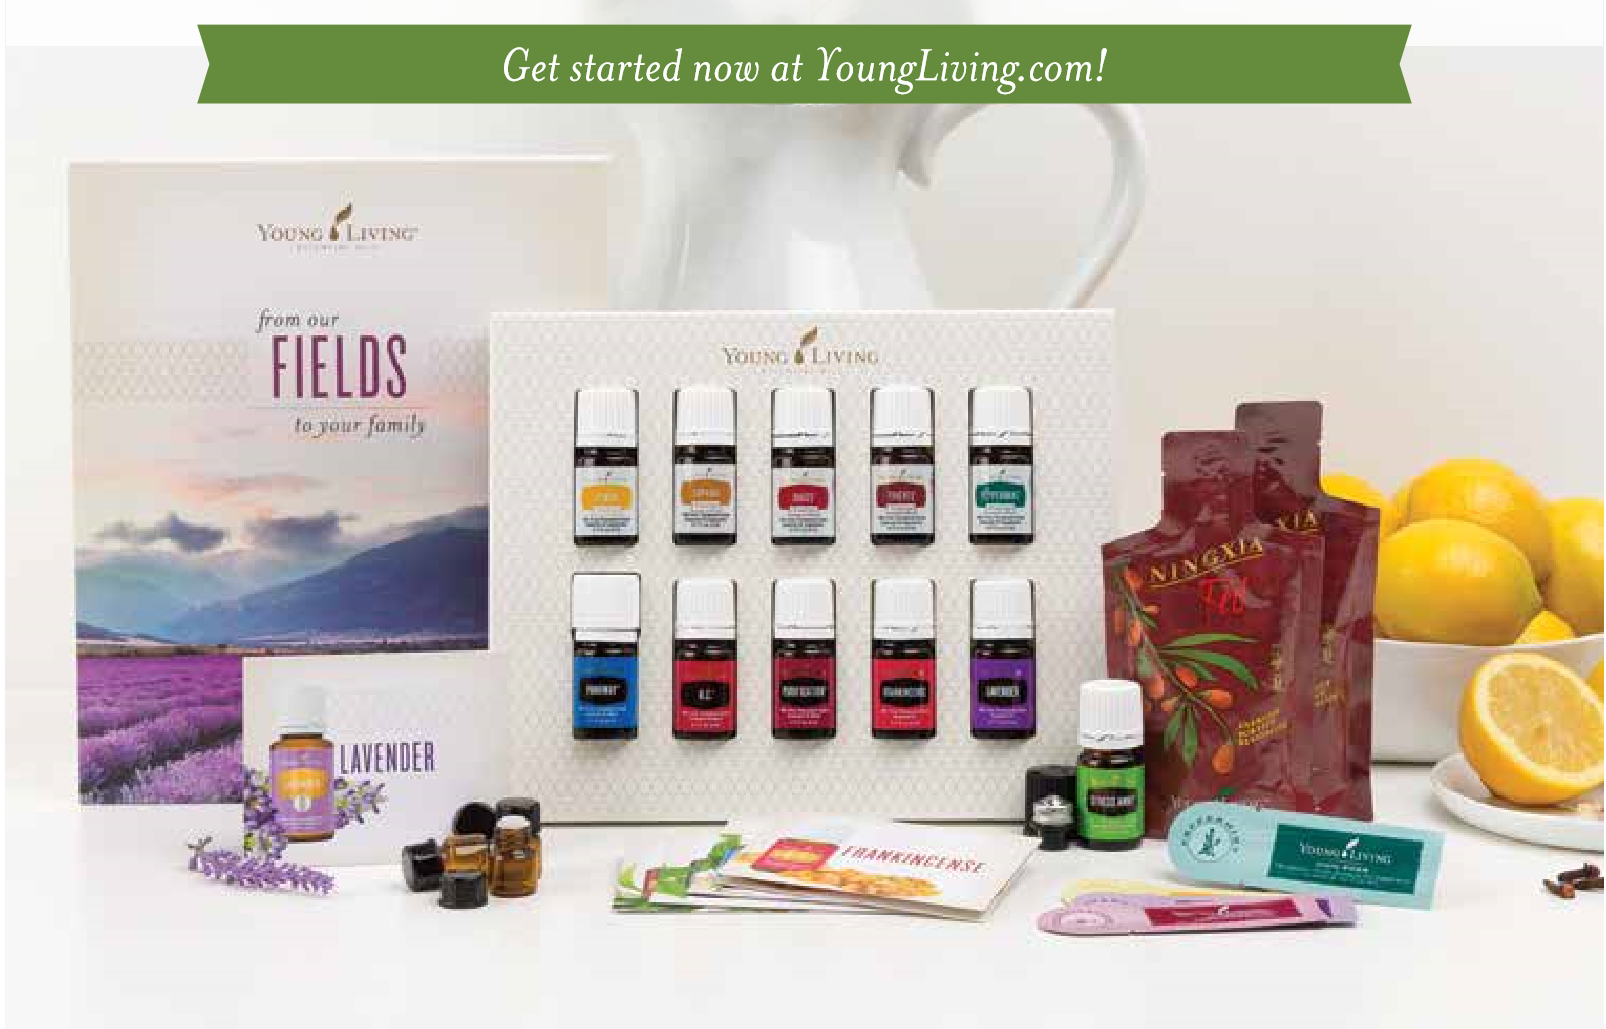 How to Order the Essential Oils Premium Starter Kit